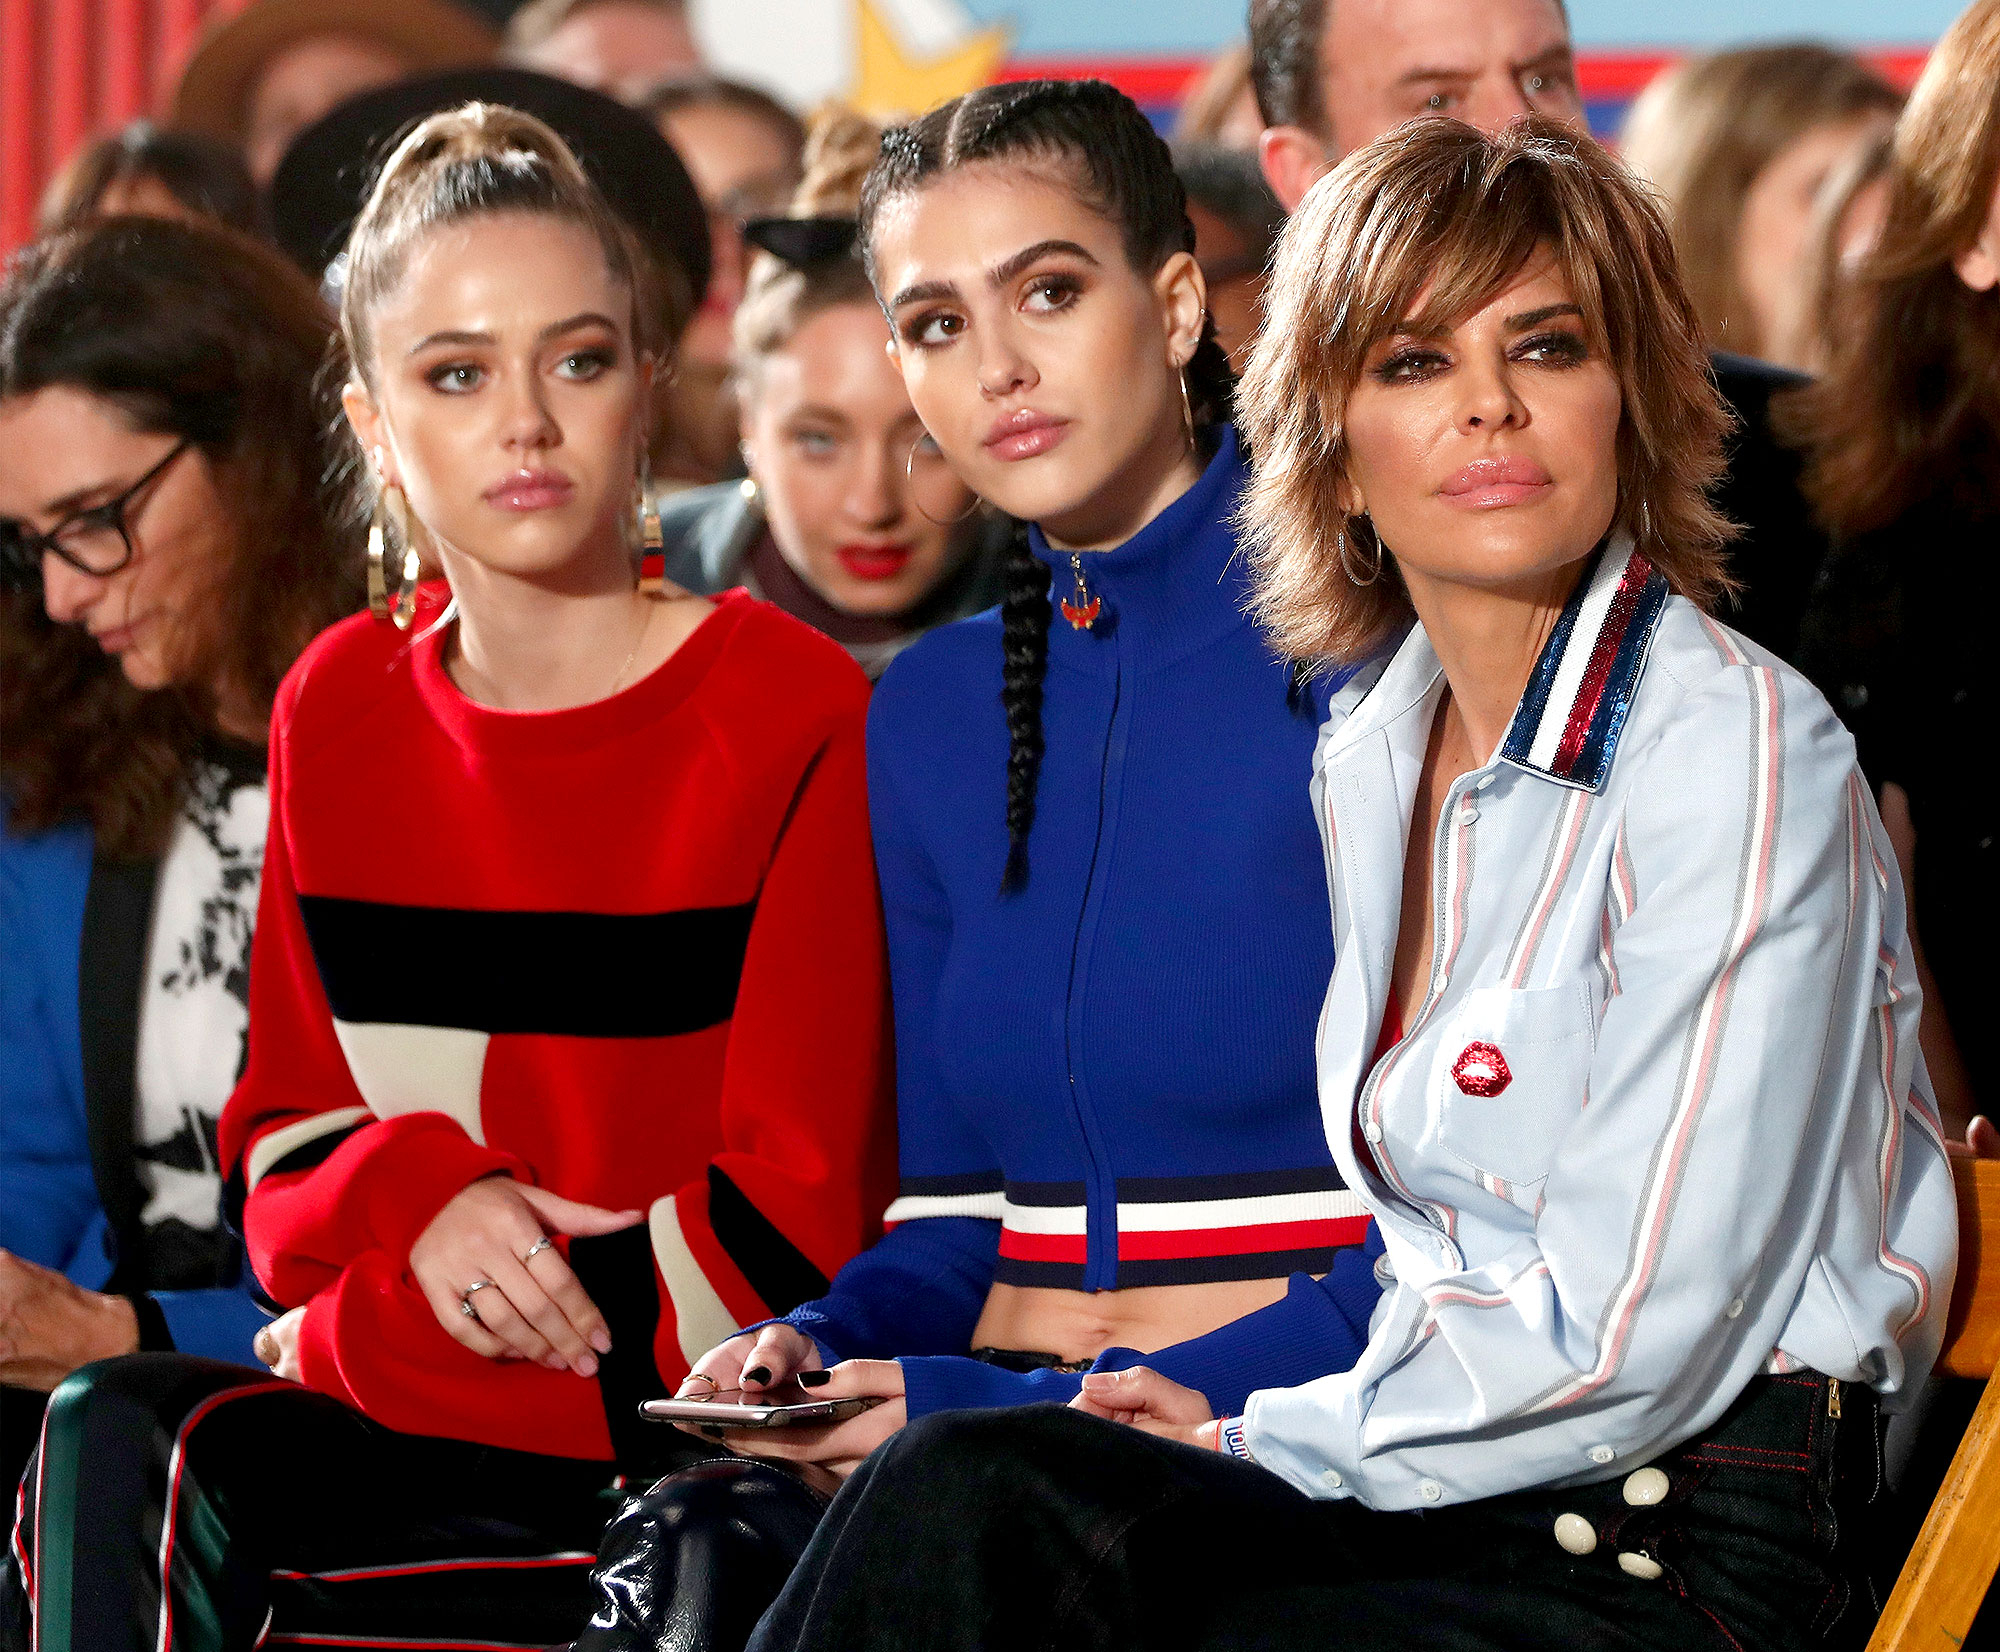 Delilah Hamlin, Amelia Hamlin and actress Lisa Rinna attend the TommyLand Tommy Hilfiger Spring 2017 Fashion Show on February 8, 2017 in Venice, California.